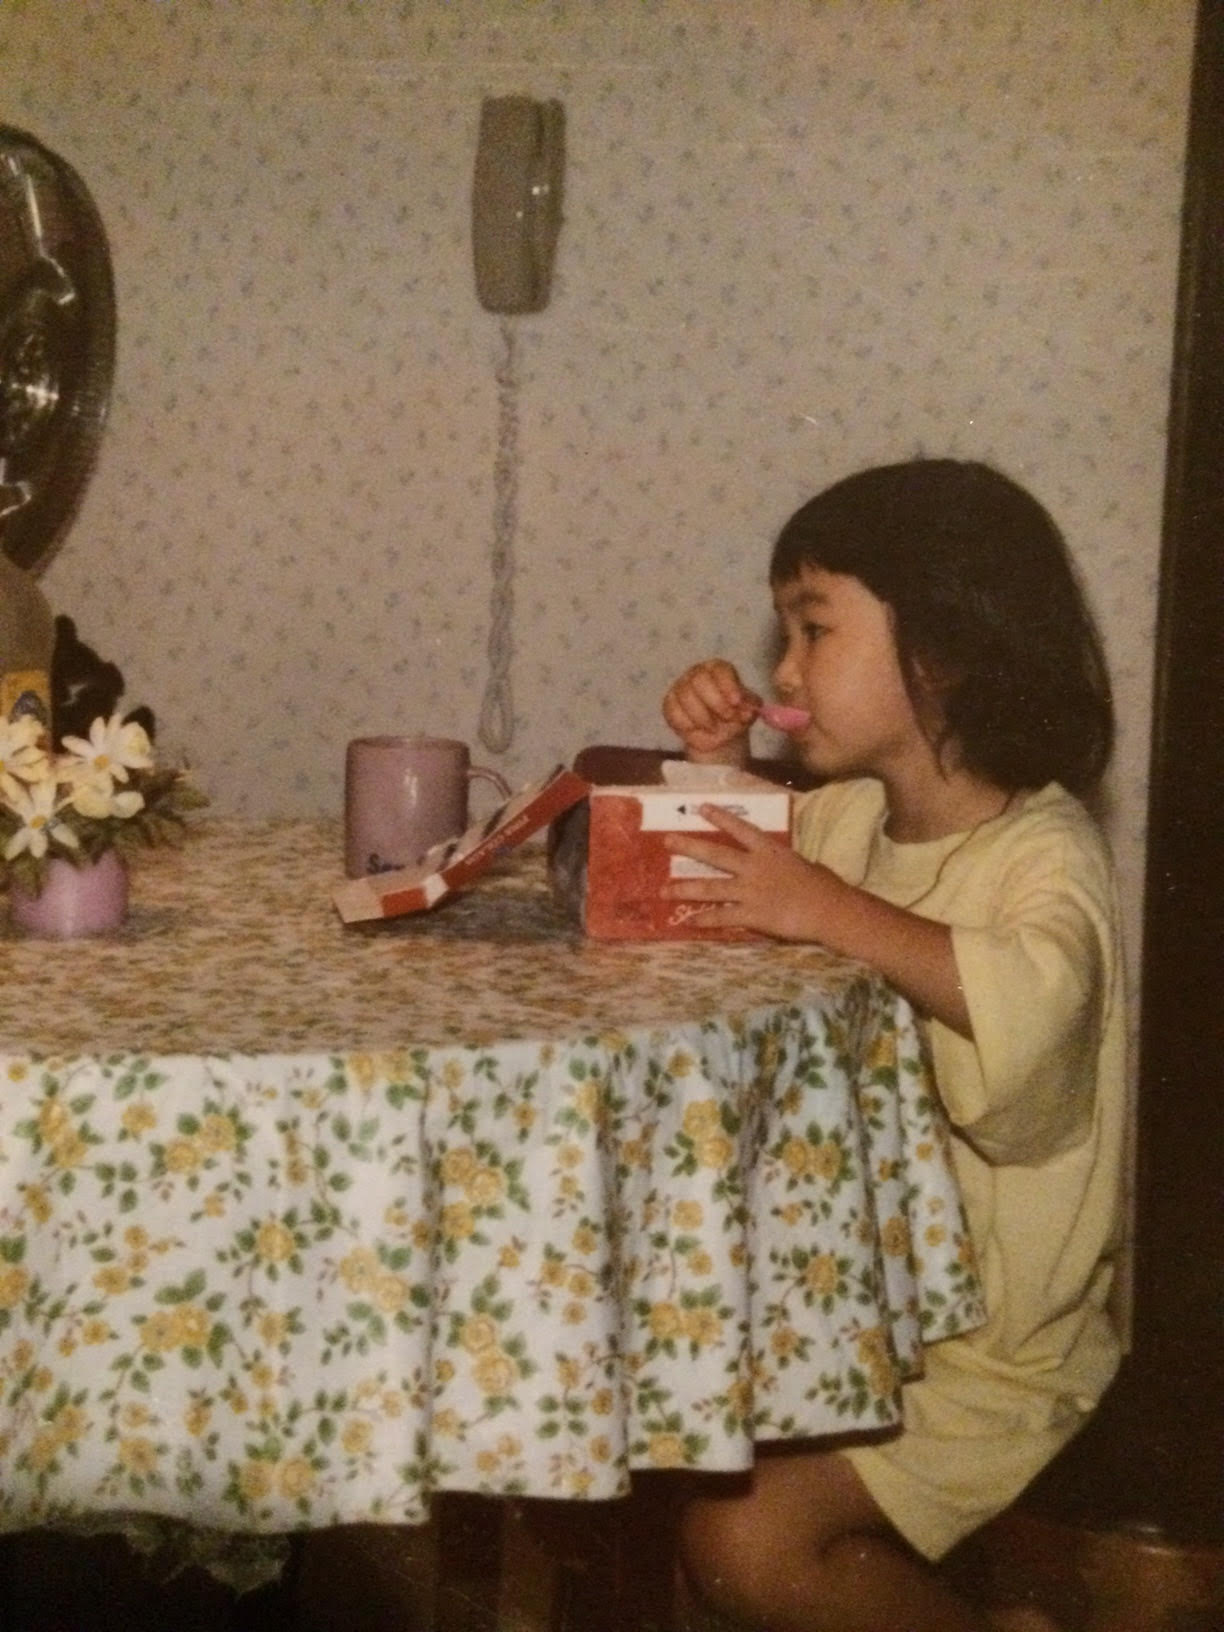 This was around the time I discovered ice cream was a good coping mechanism.